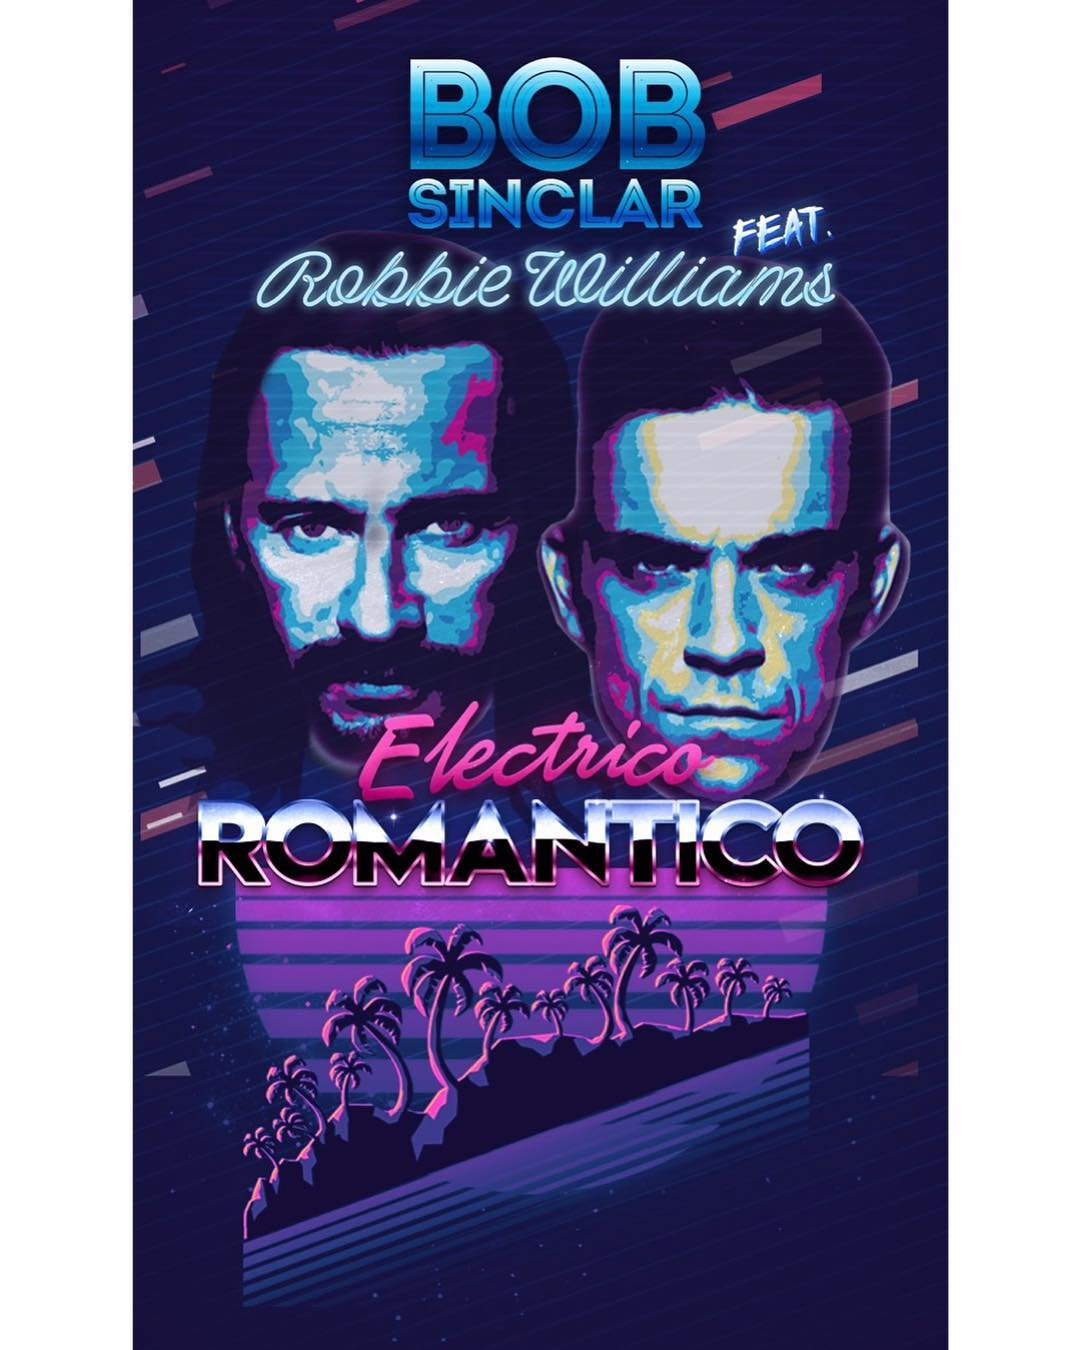 https://www.robbiewilliamslive.com/images/stories/2019/2019-01-19-electrico-romantico-artwork-3.jpg